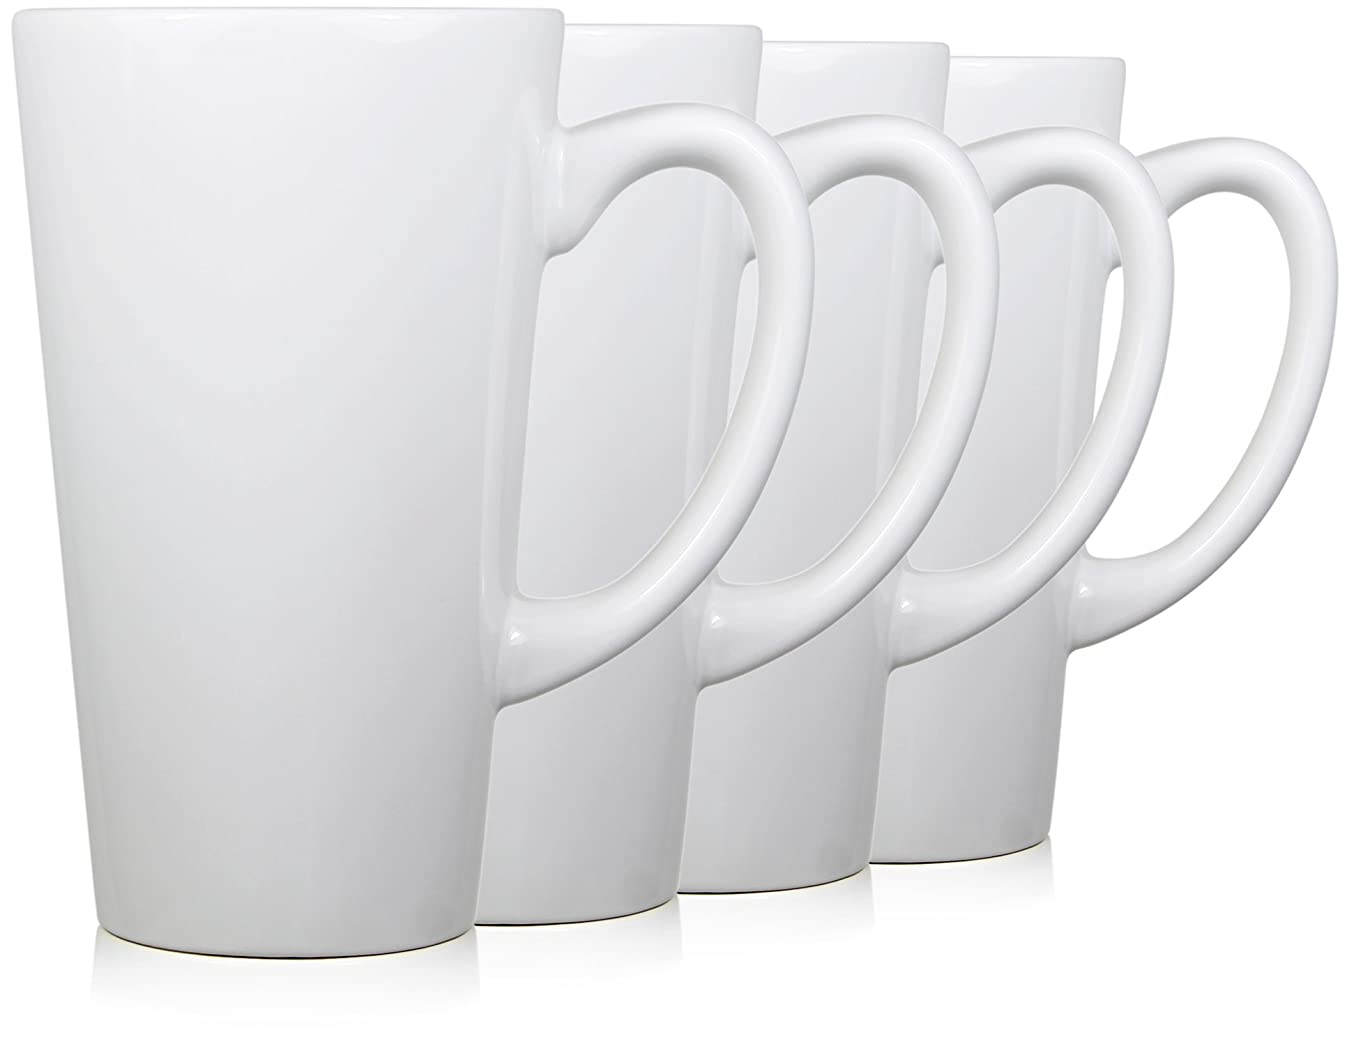 Serami 15oz White Funnel Tall Mugs for Coffee or Tea. Large Handles and Ceramic Construction, Set of 4